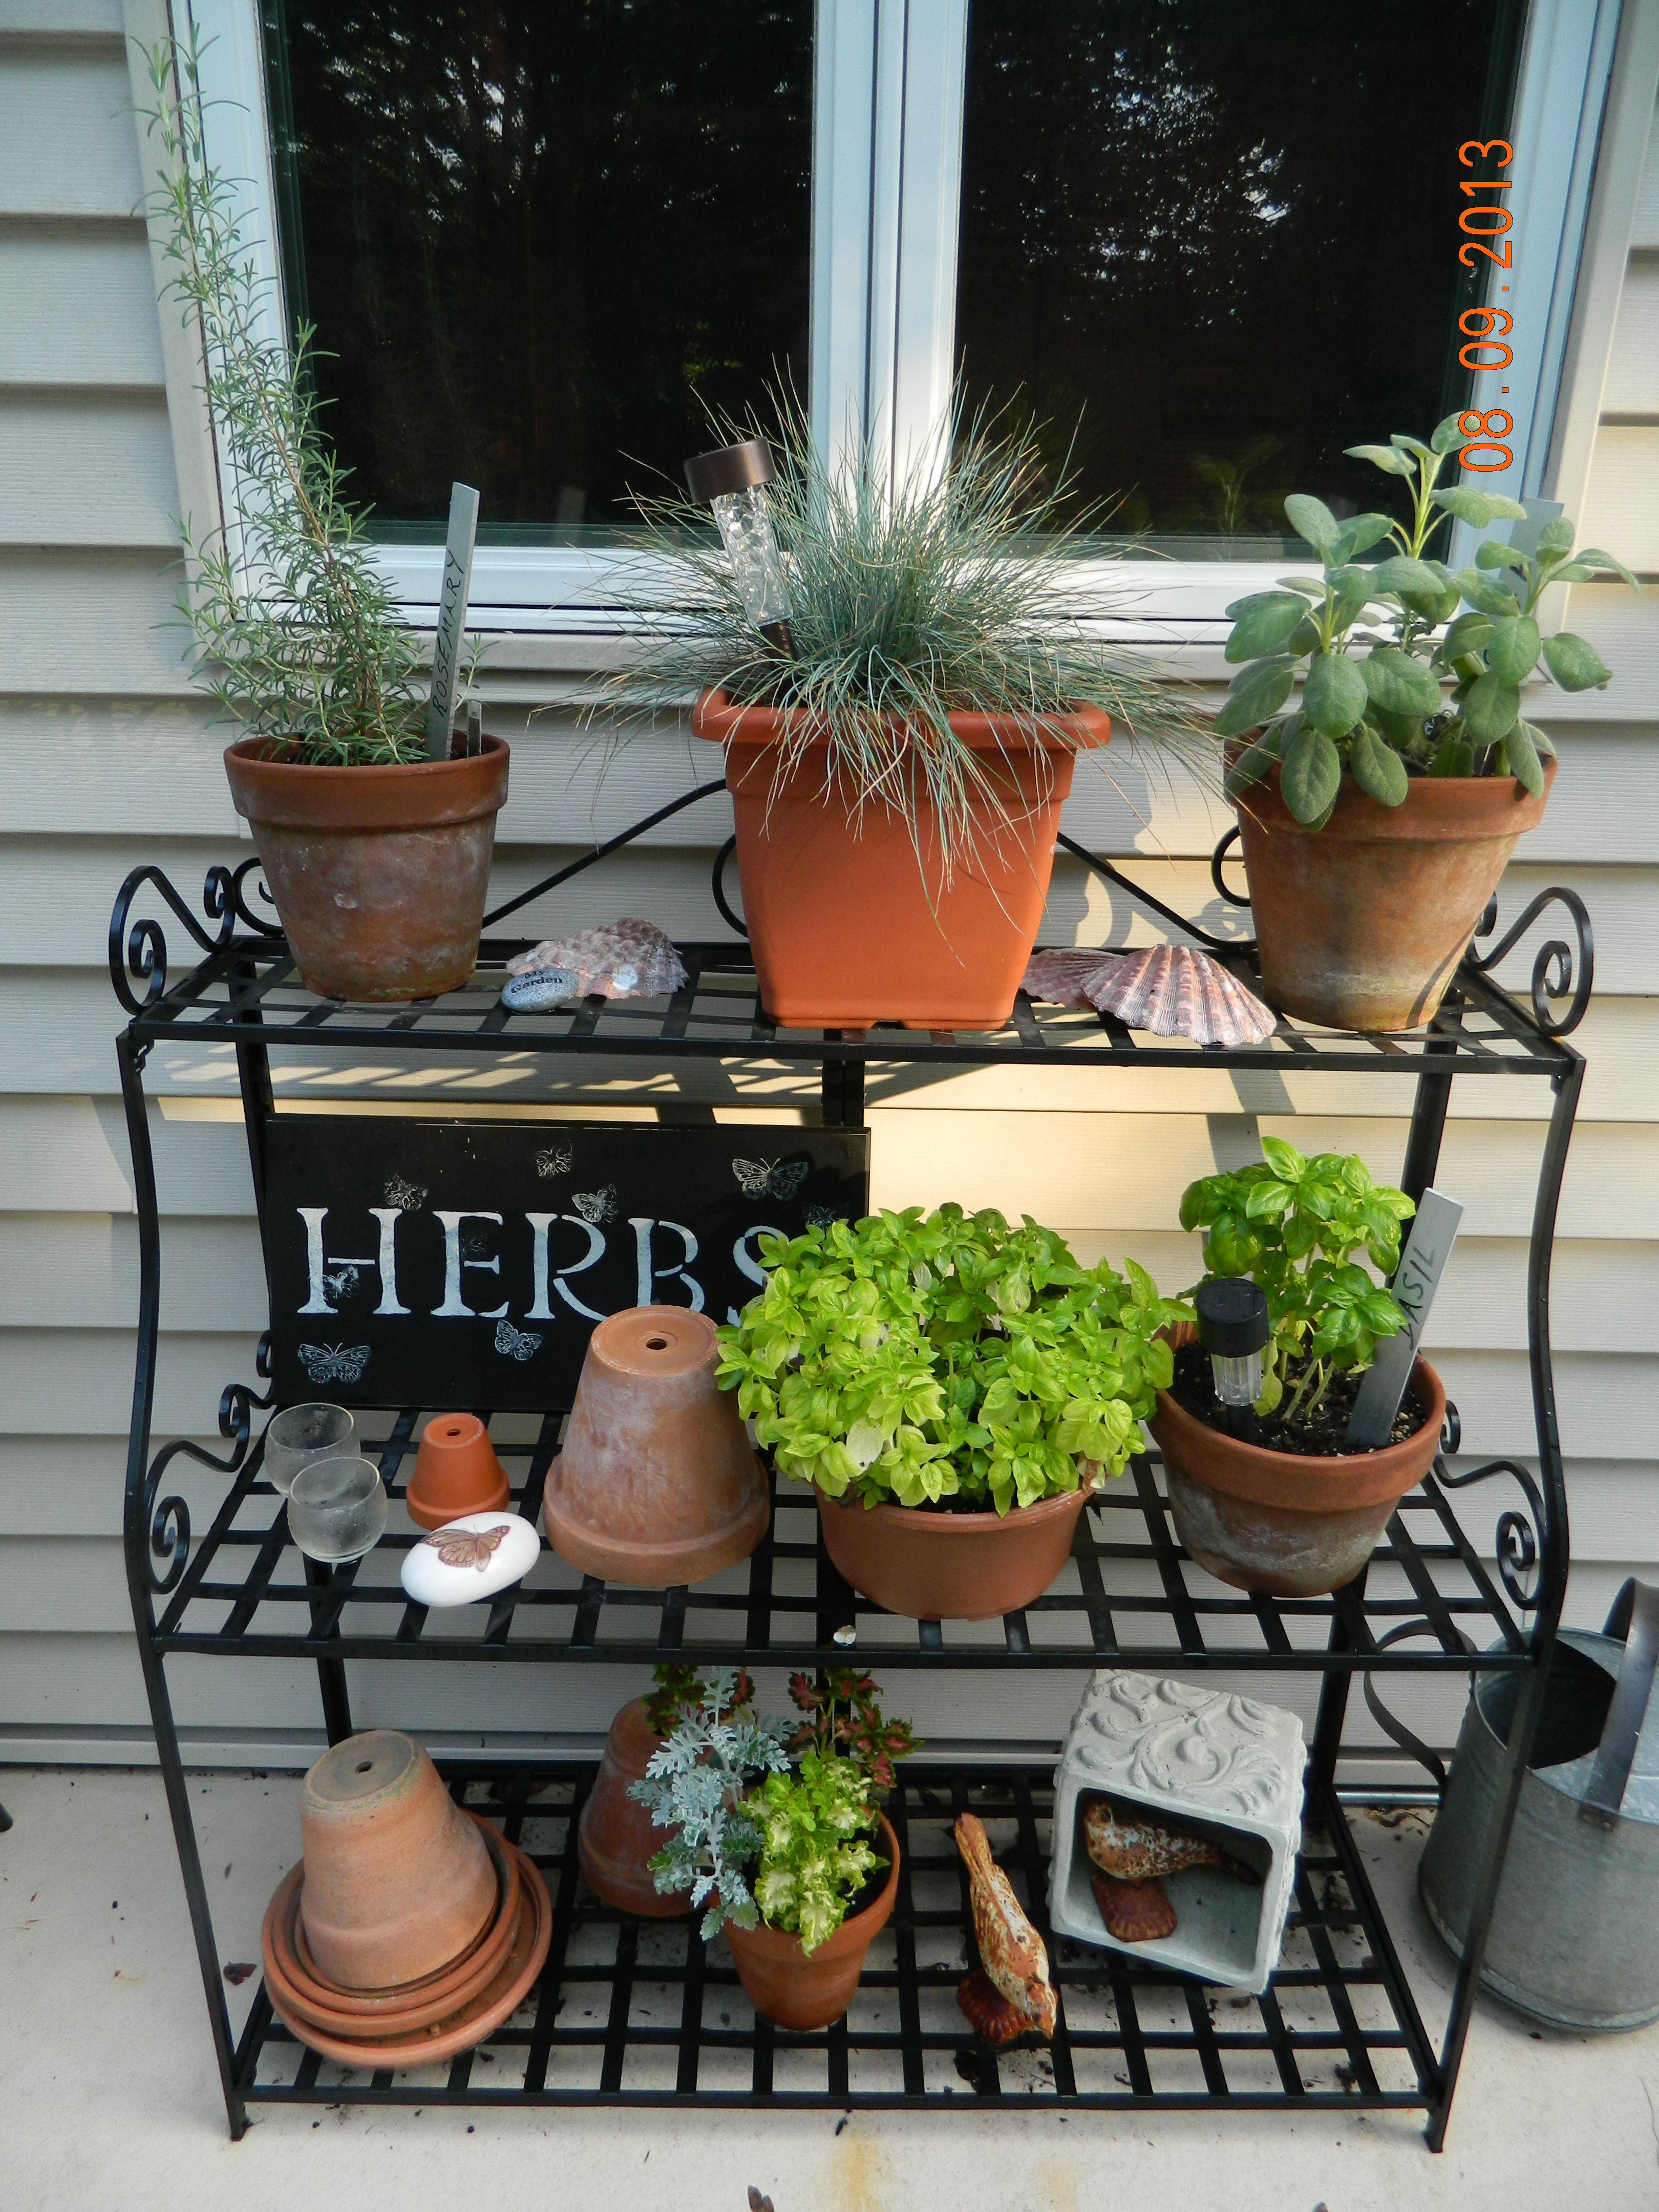 Herbs Now At My Window Plant Stand Summer 2013 Check Out